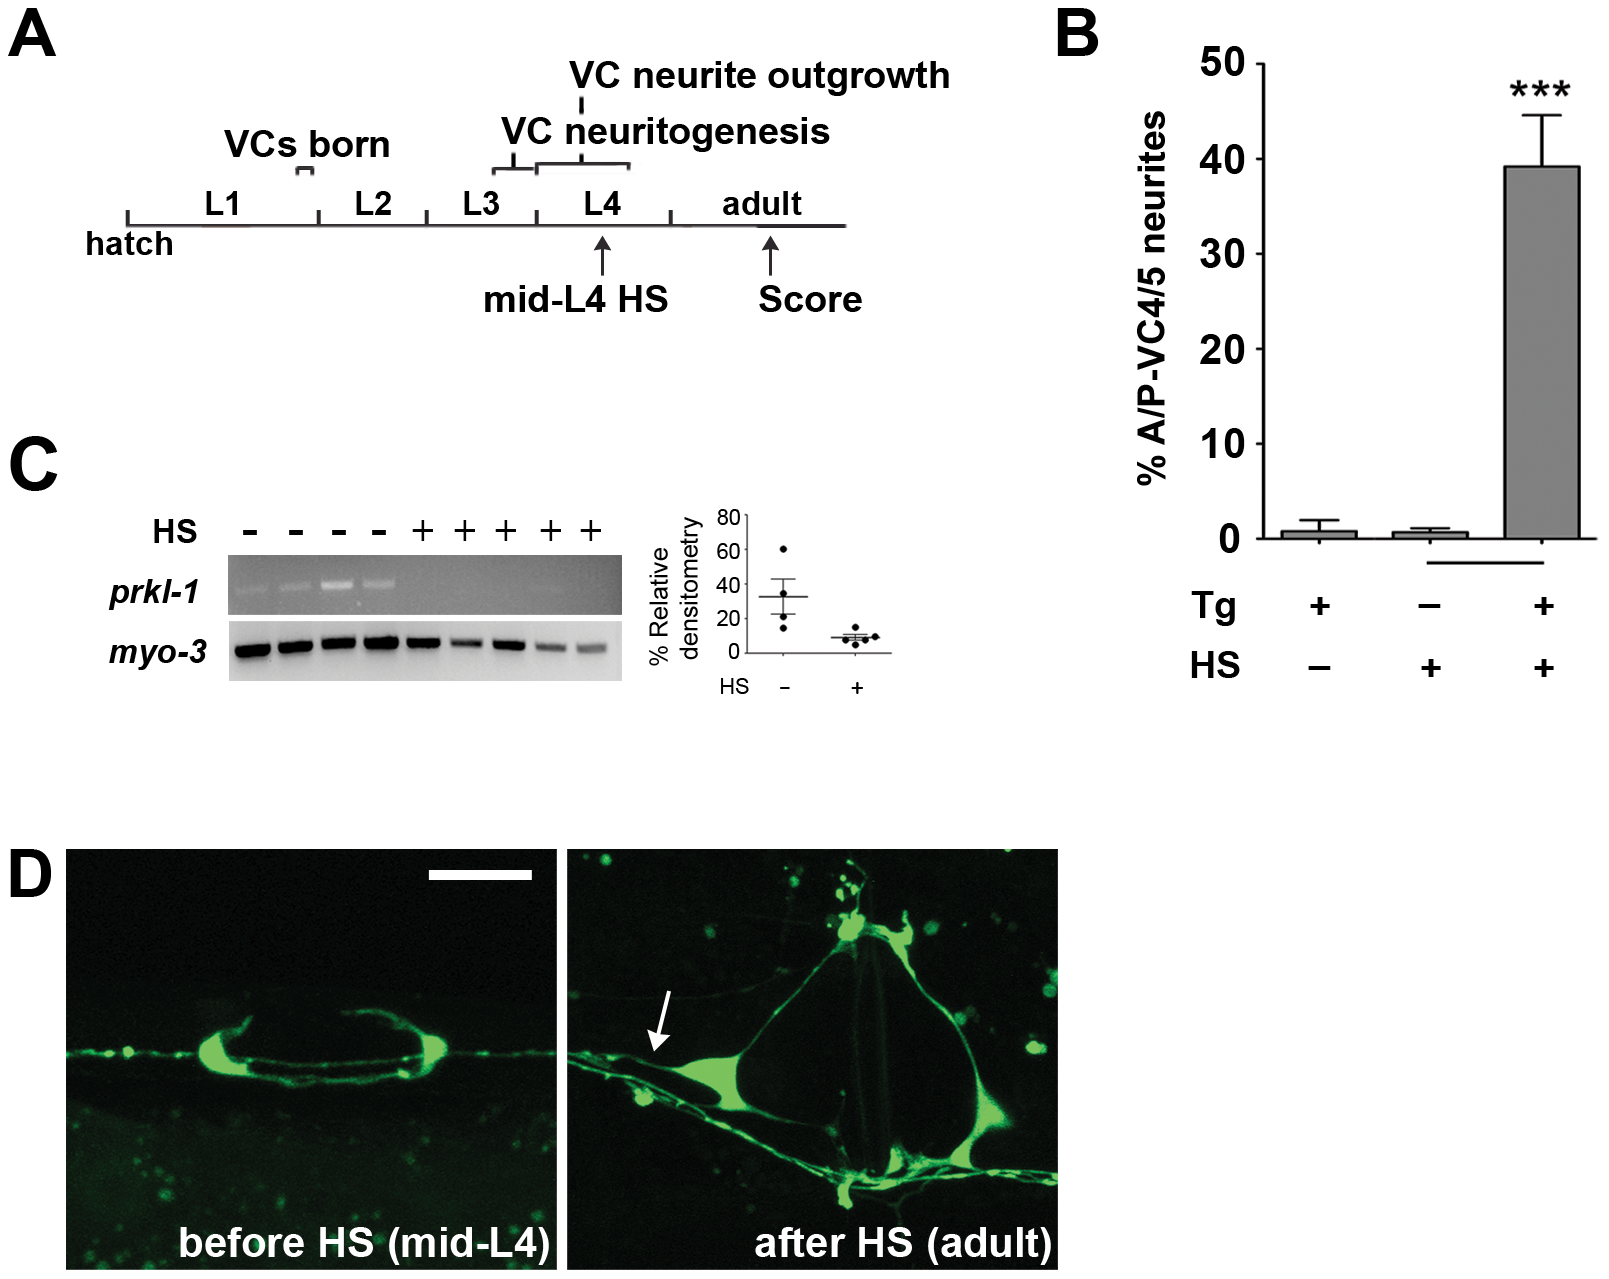 PRKL-1 is required persistently to inhibit neurite growth.